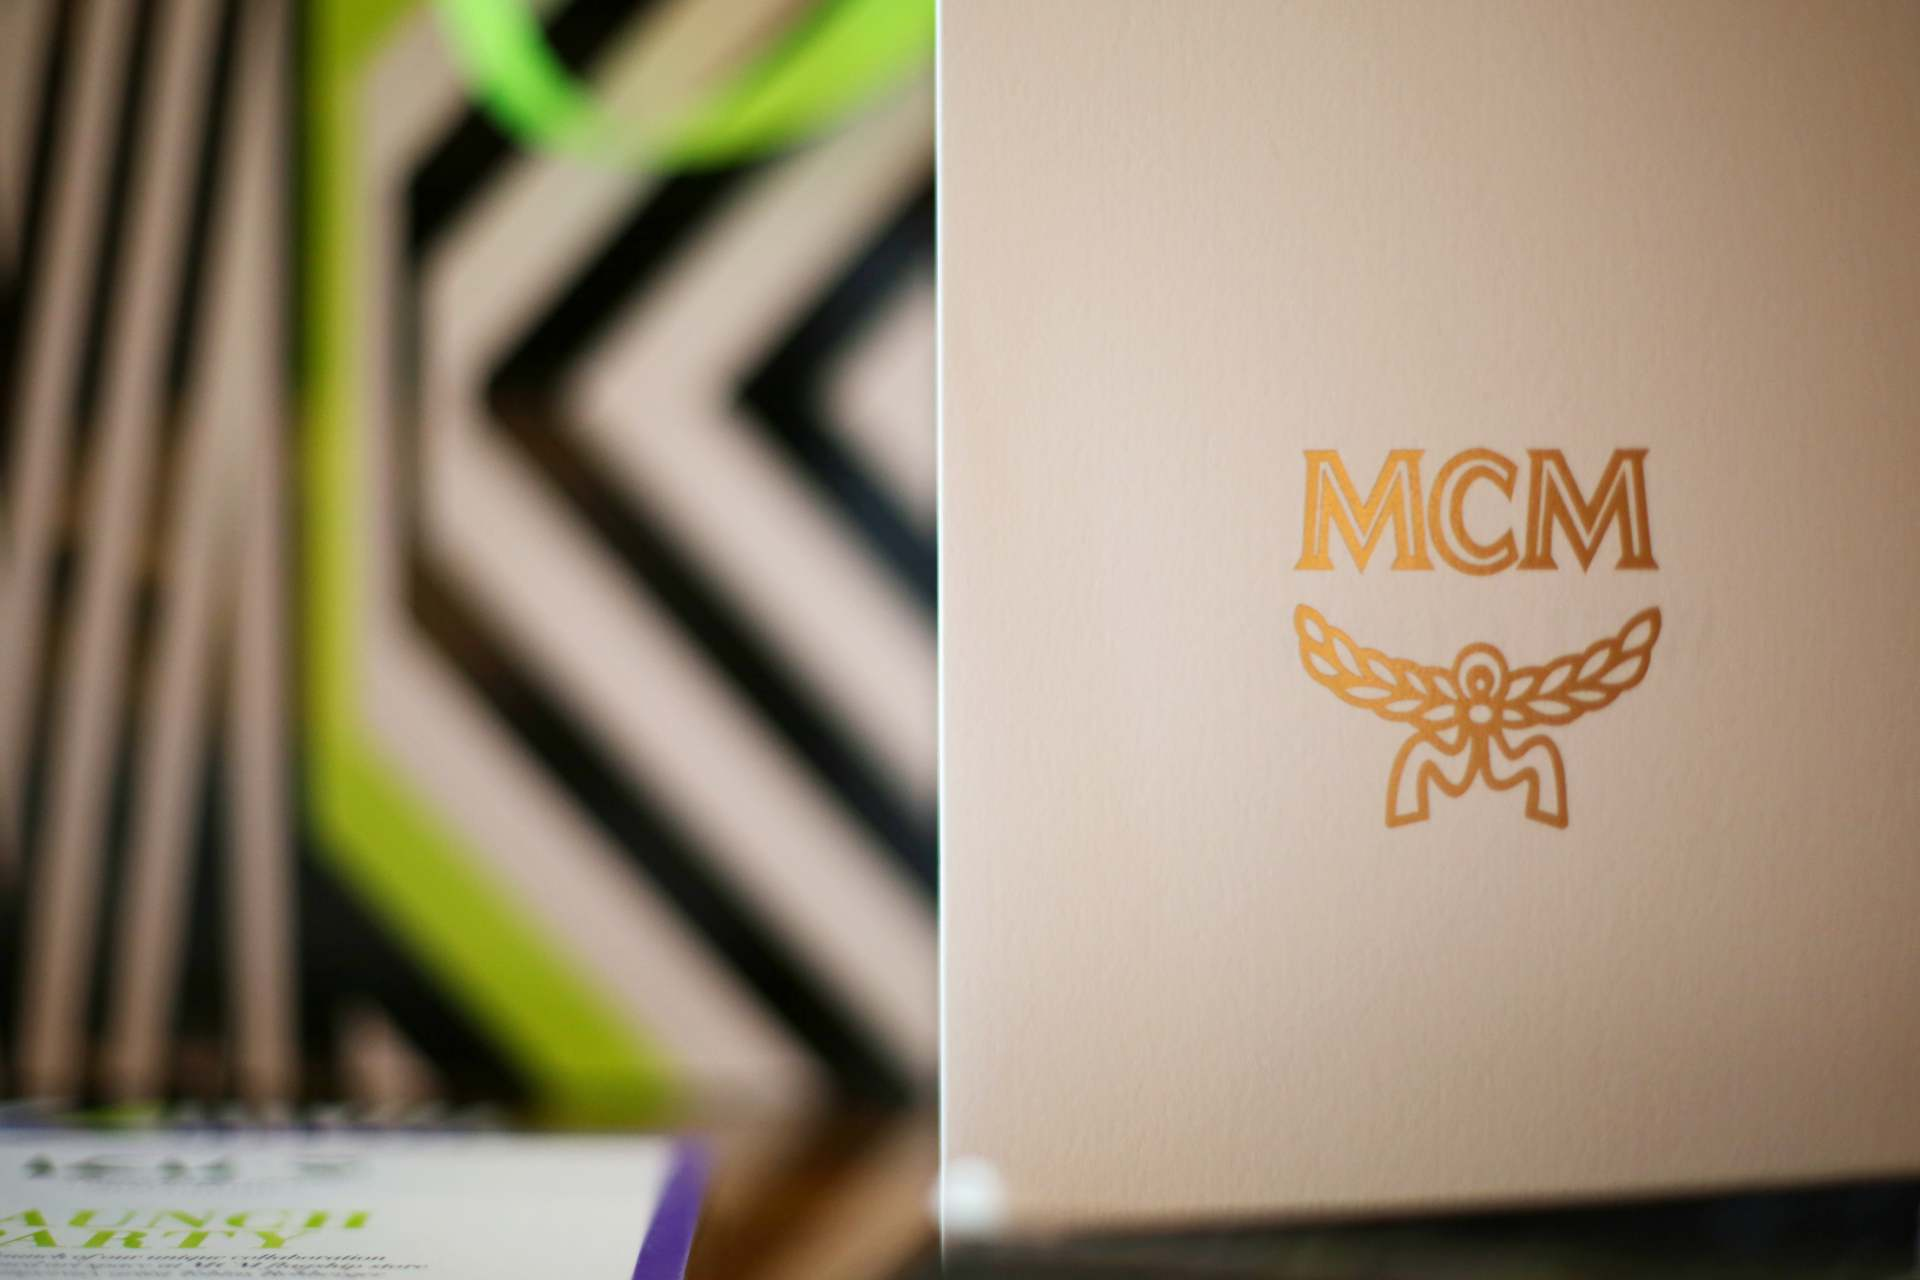 inthefrow in hong kong with mcm x tobias rehberger